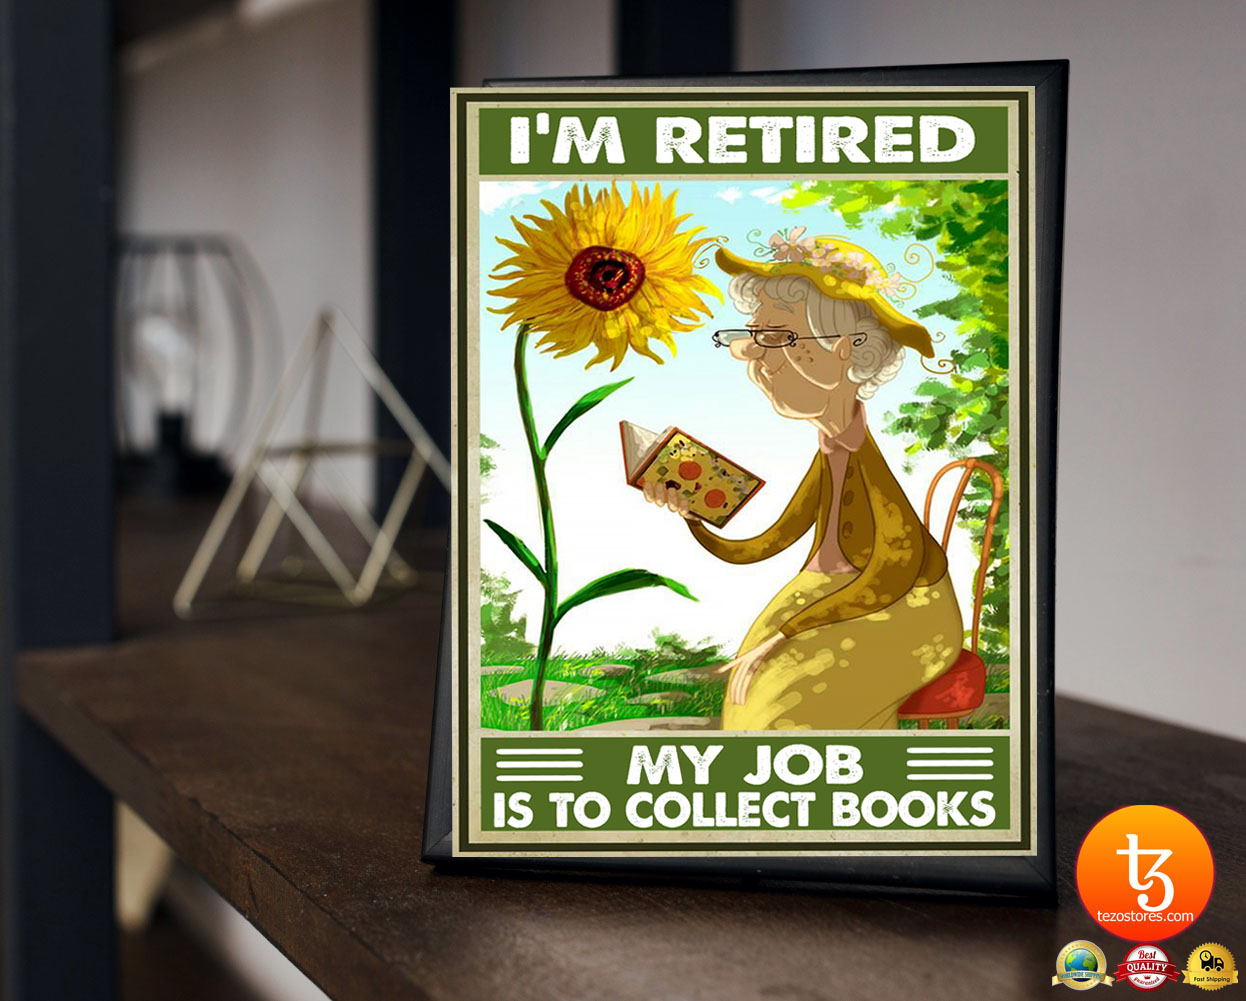 I'm retired my job is to collect books poster 19